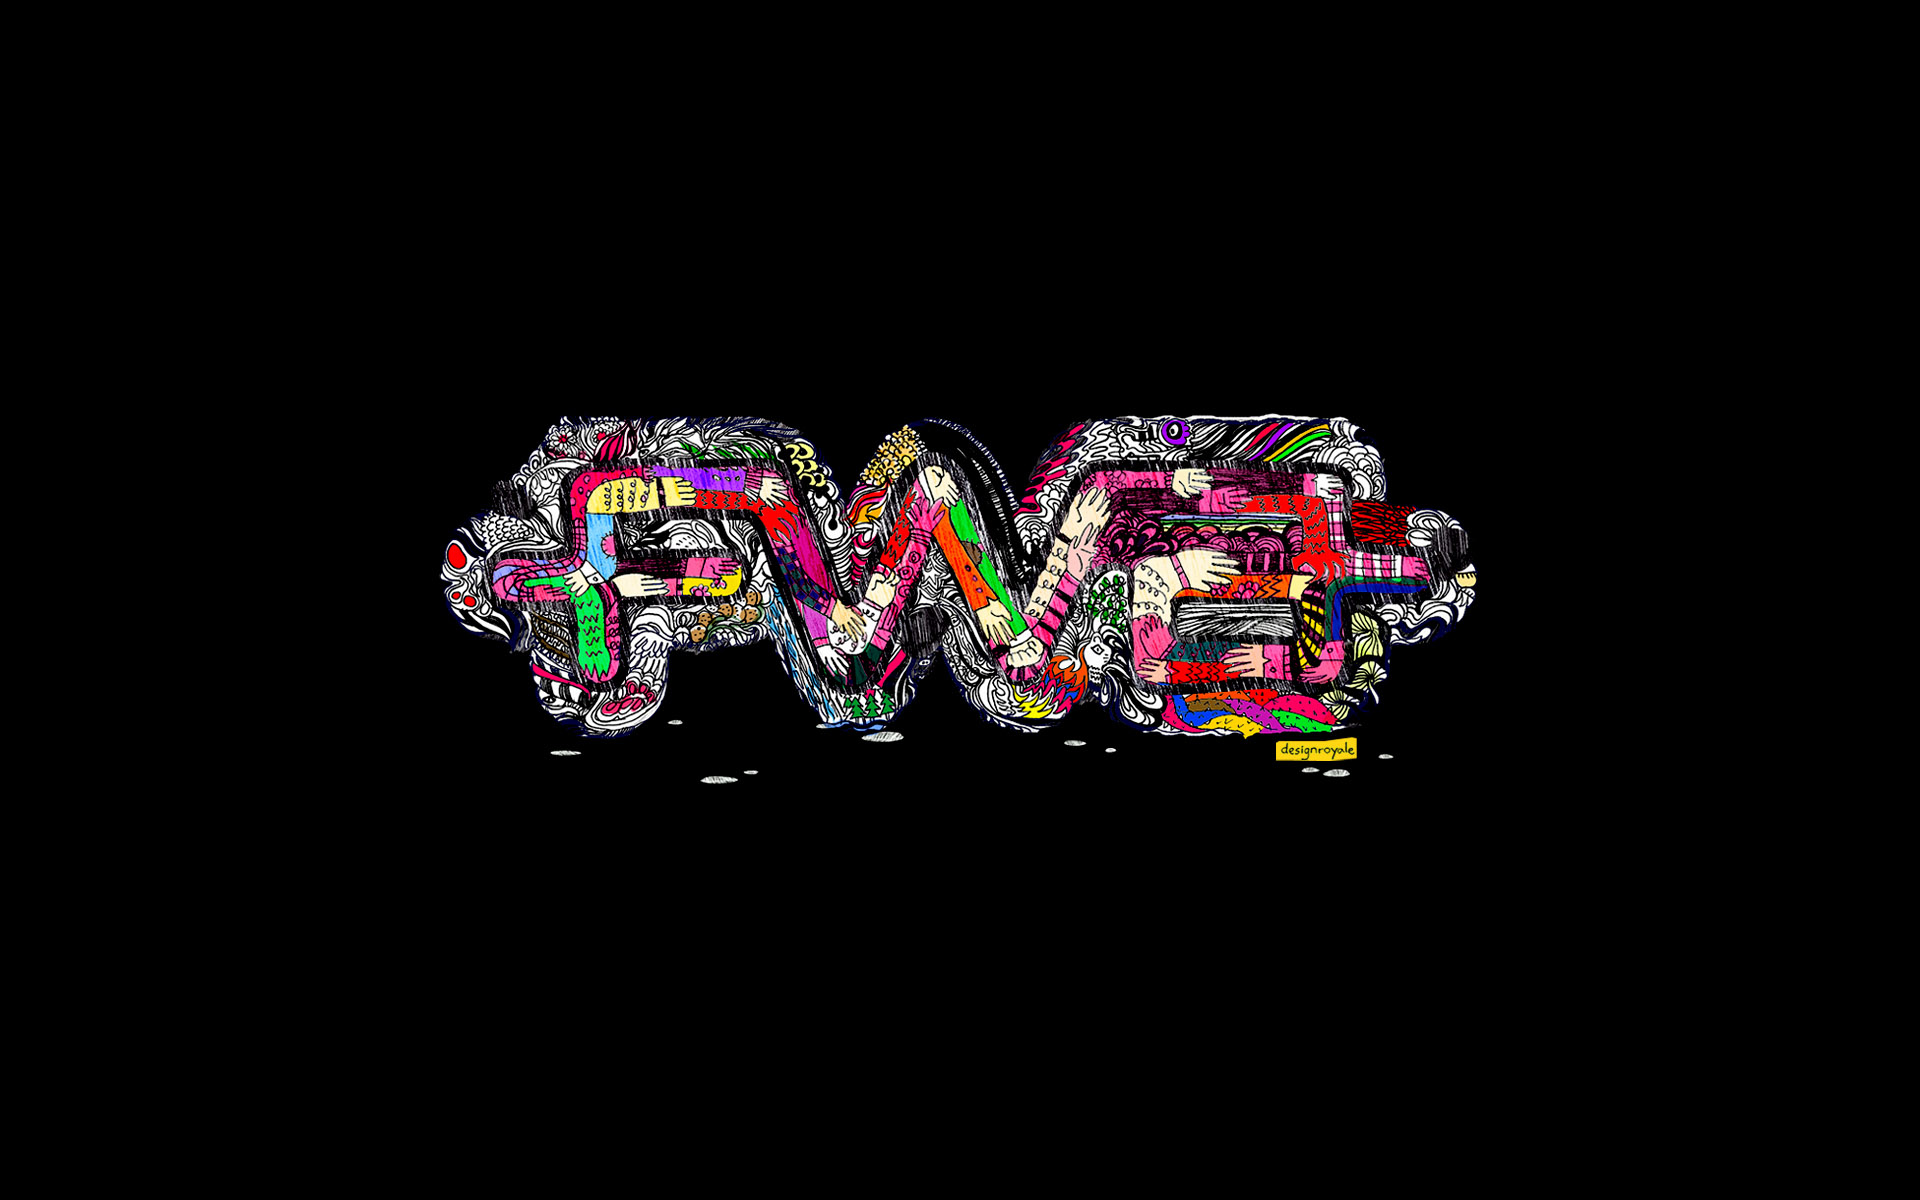 FWA wallpaper widescreen 23548